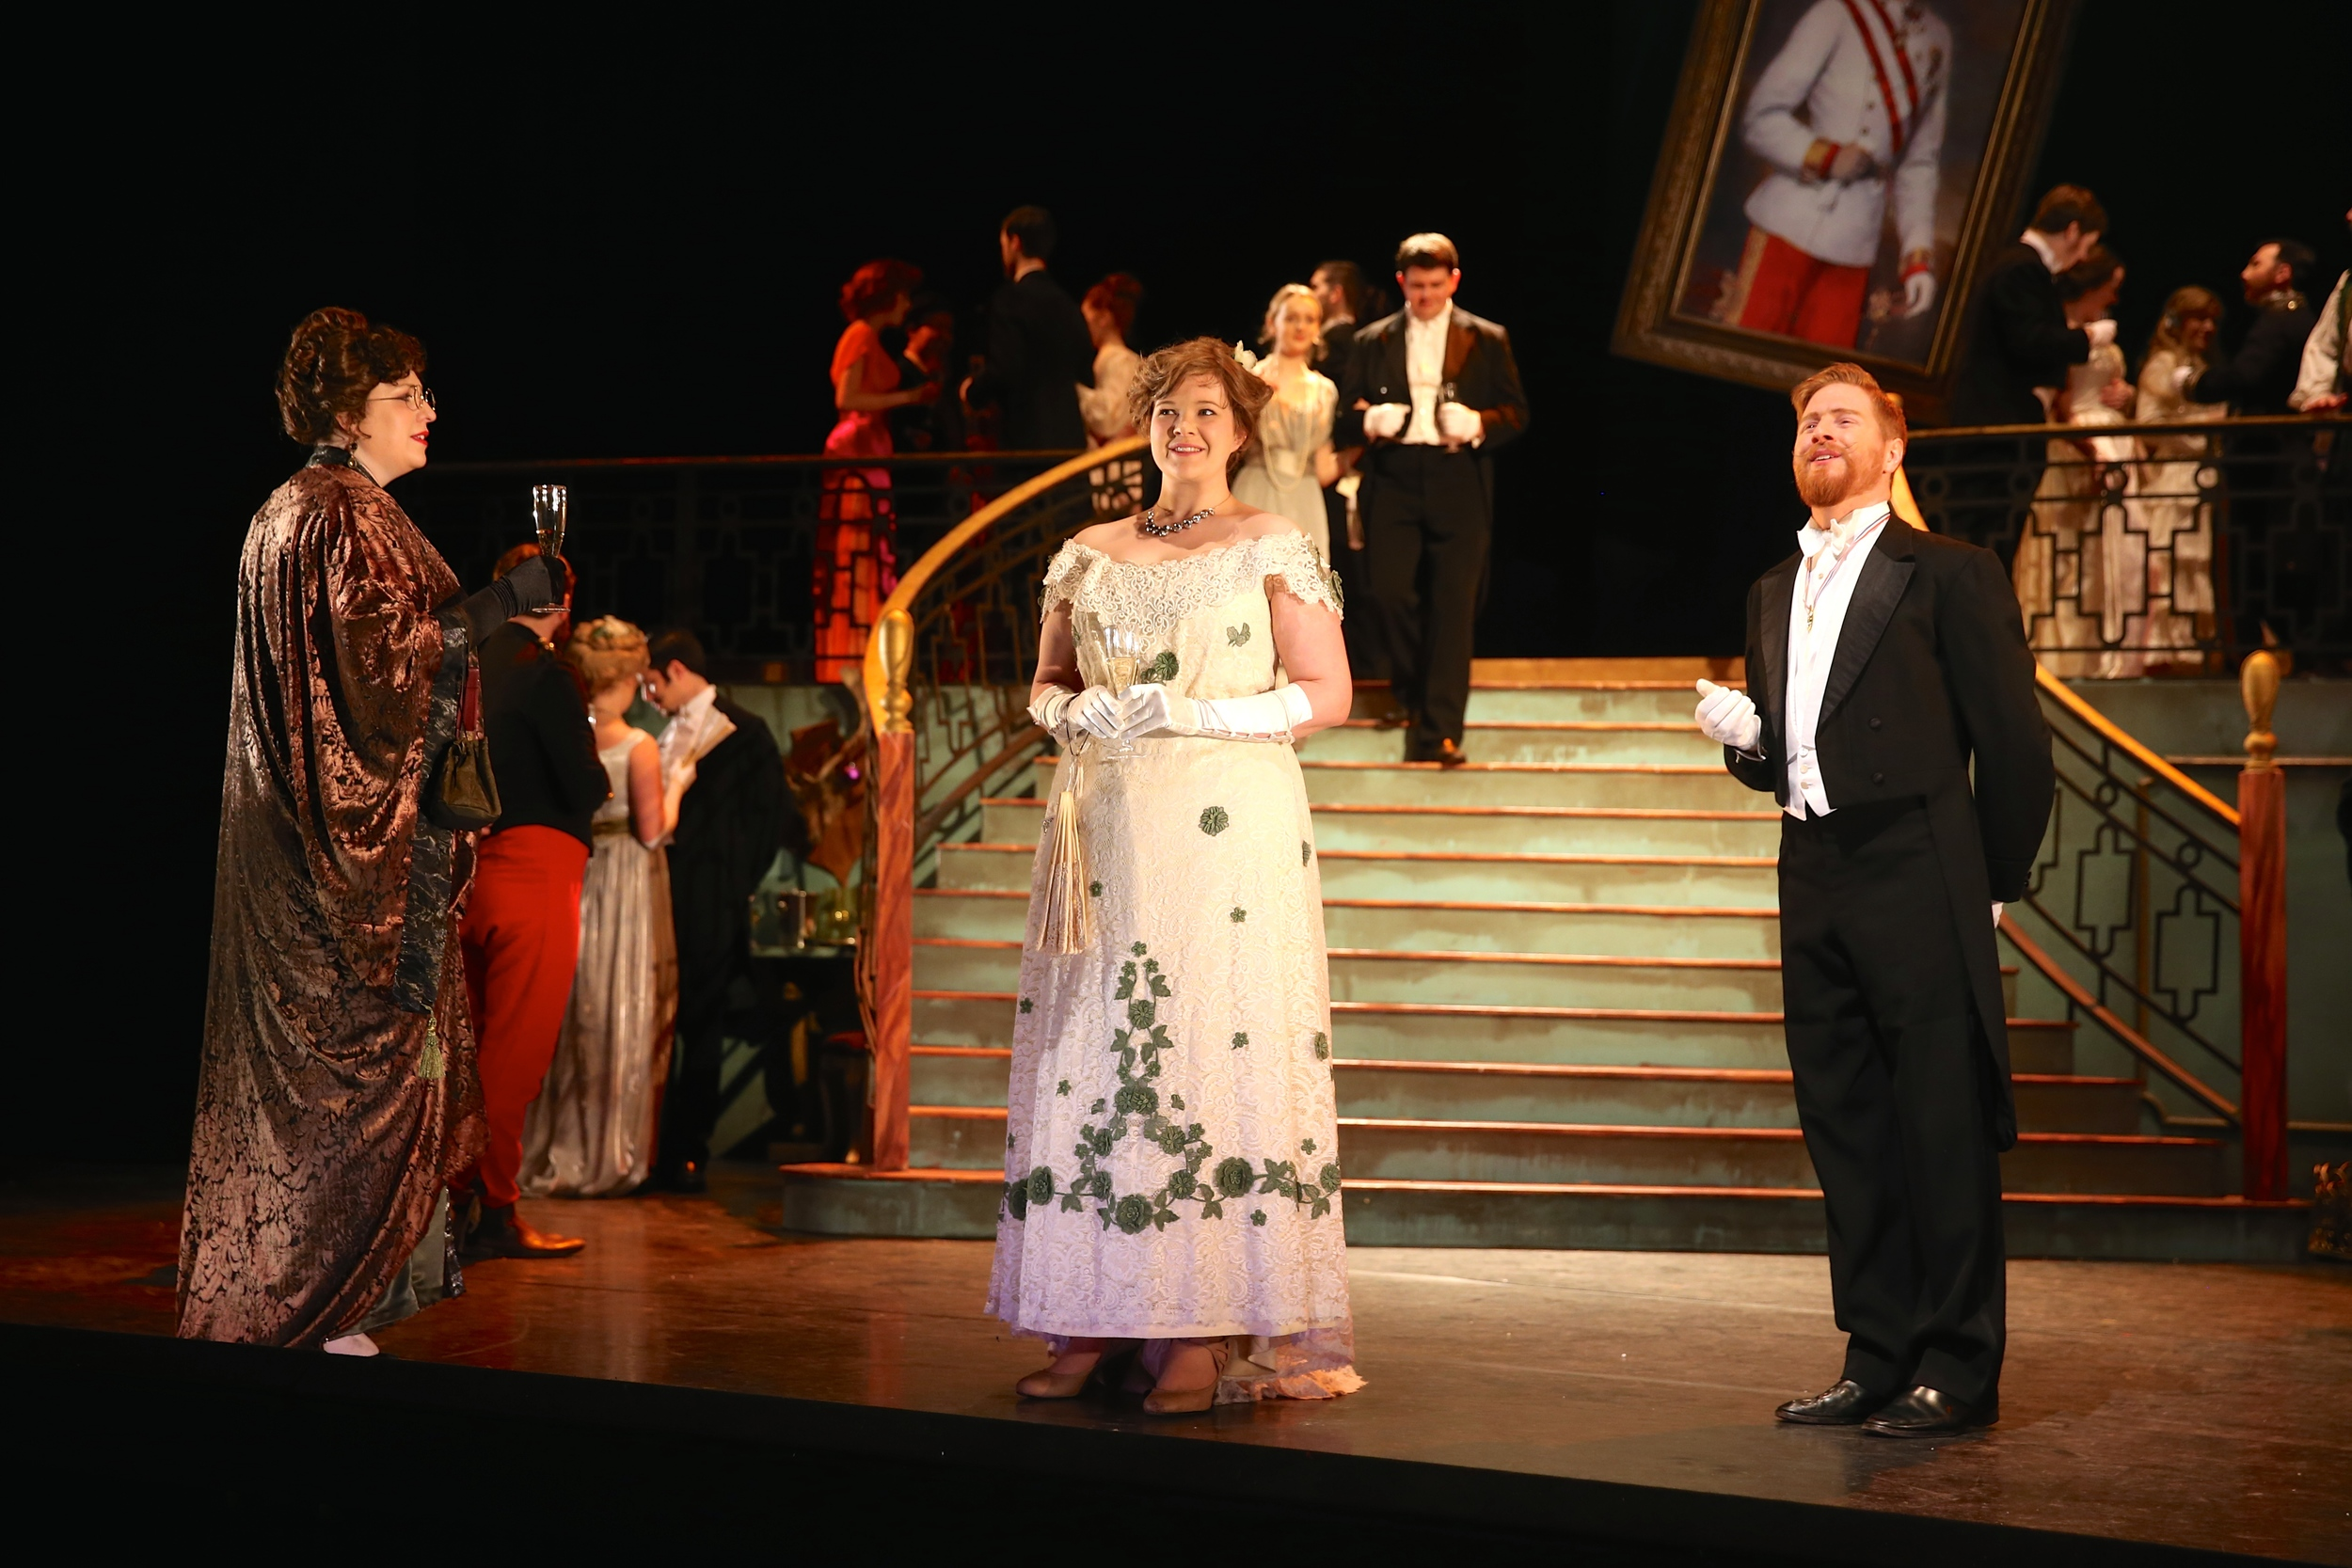 Cascada, The Merry Widow - Royal Northern College of Music, 2014